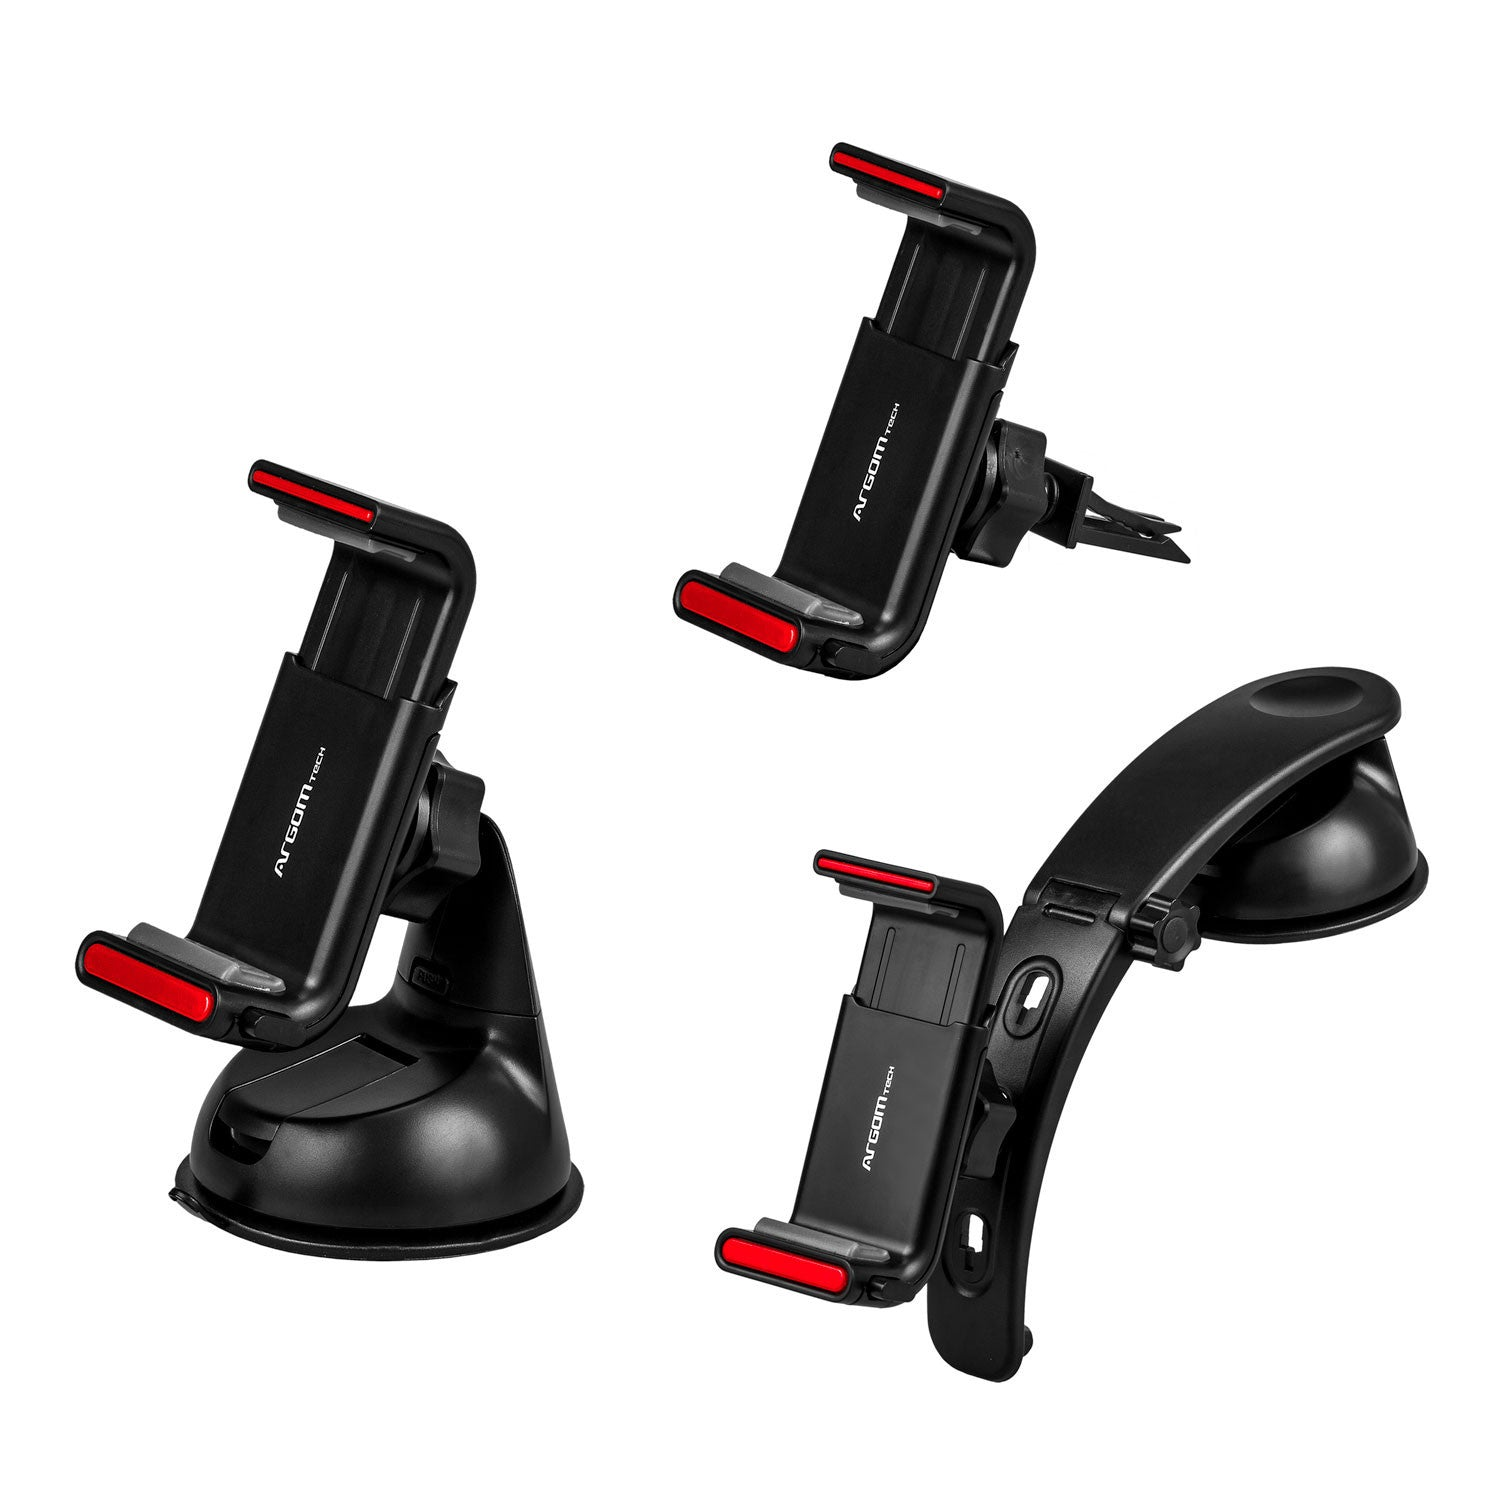 Car Mount Kit for Cell Phones 3-in-1